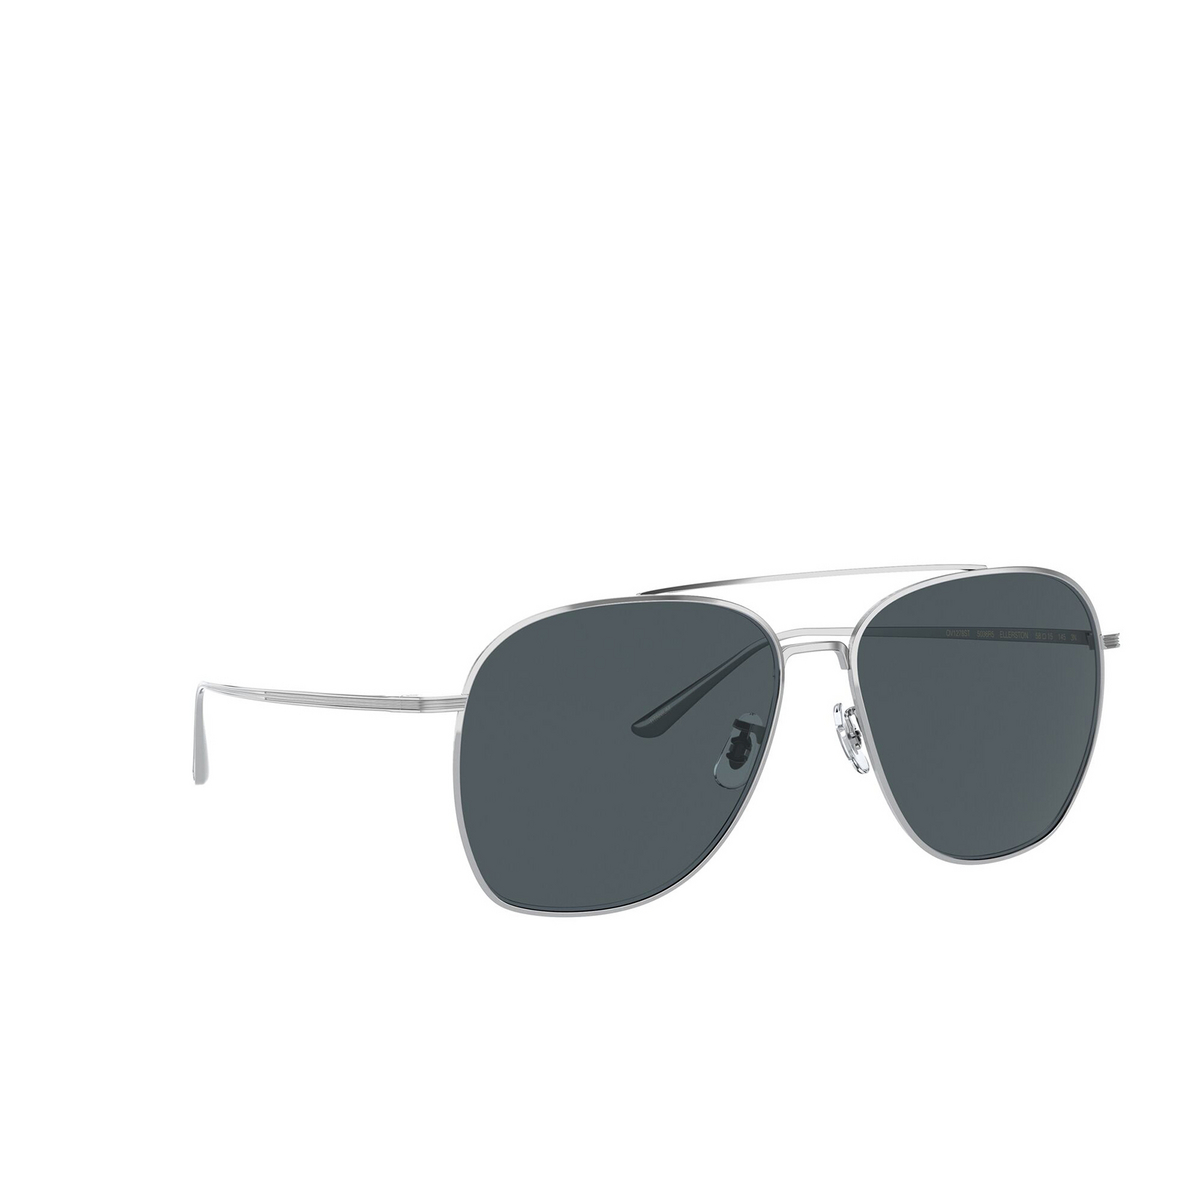 Oliver Peoples® Aviator Sunglasses: Ellerston OV1278ST color Silver 5036R5 - three-quarters view.